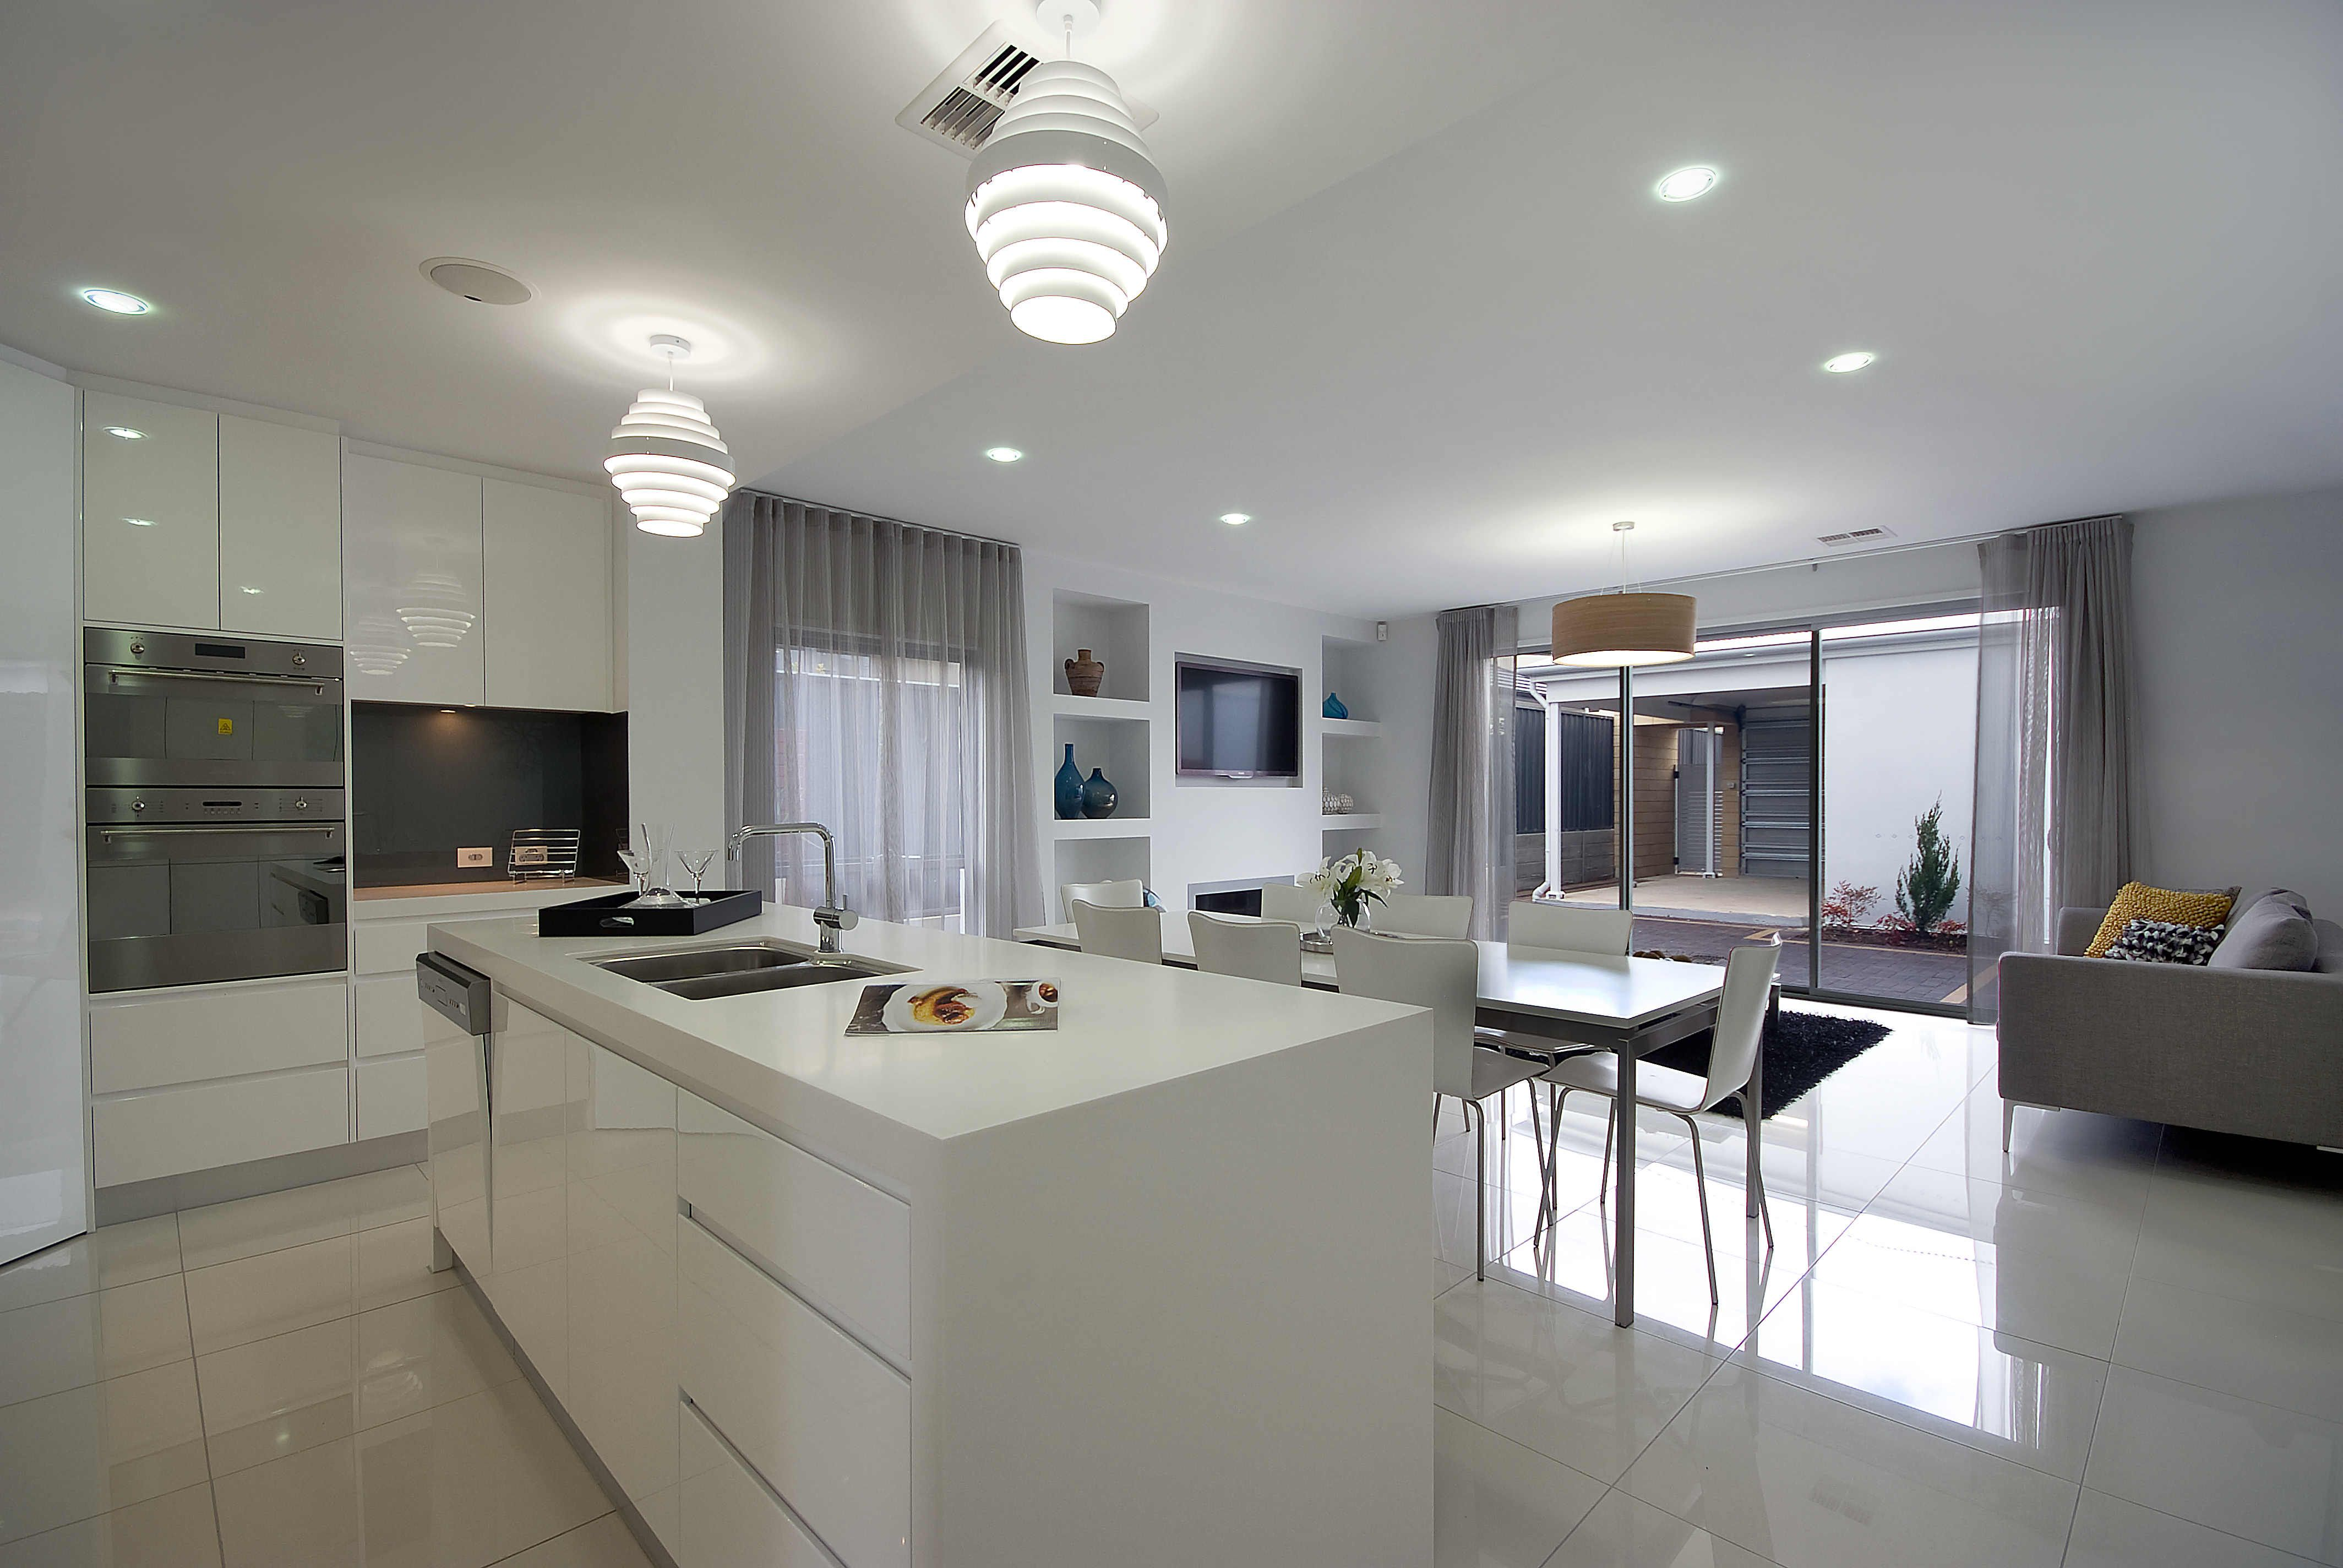 Rossdale Homes Is One Of South Australiau0027s Most Respected Builders. A Proud  Family Company, Building Award Winning New Home Designs Since